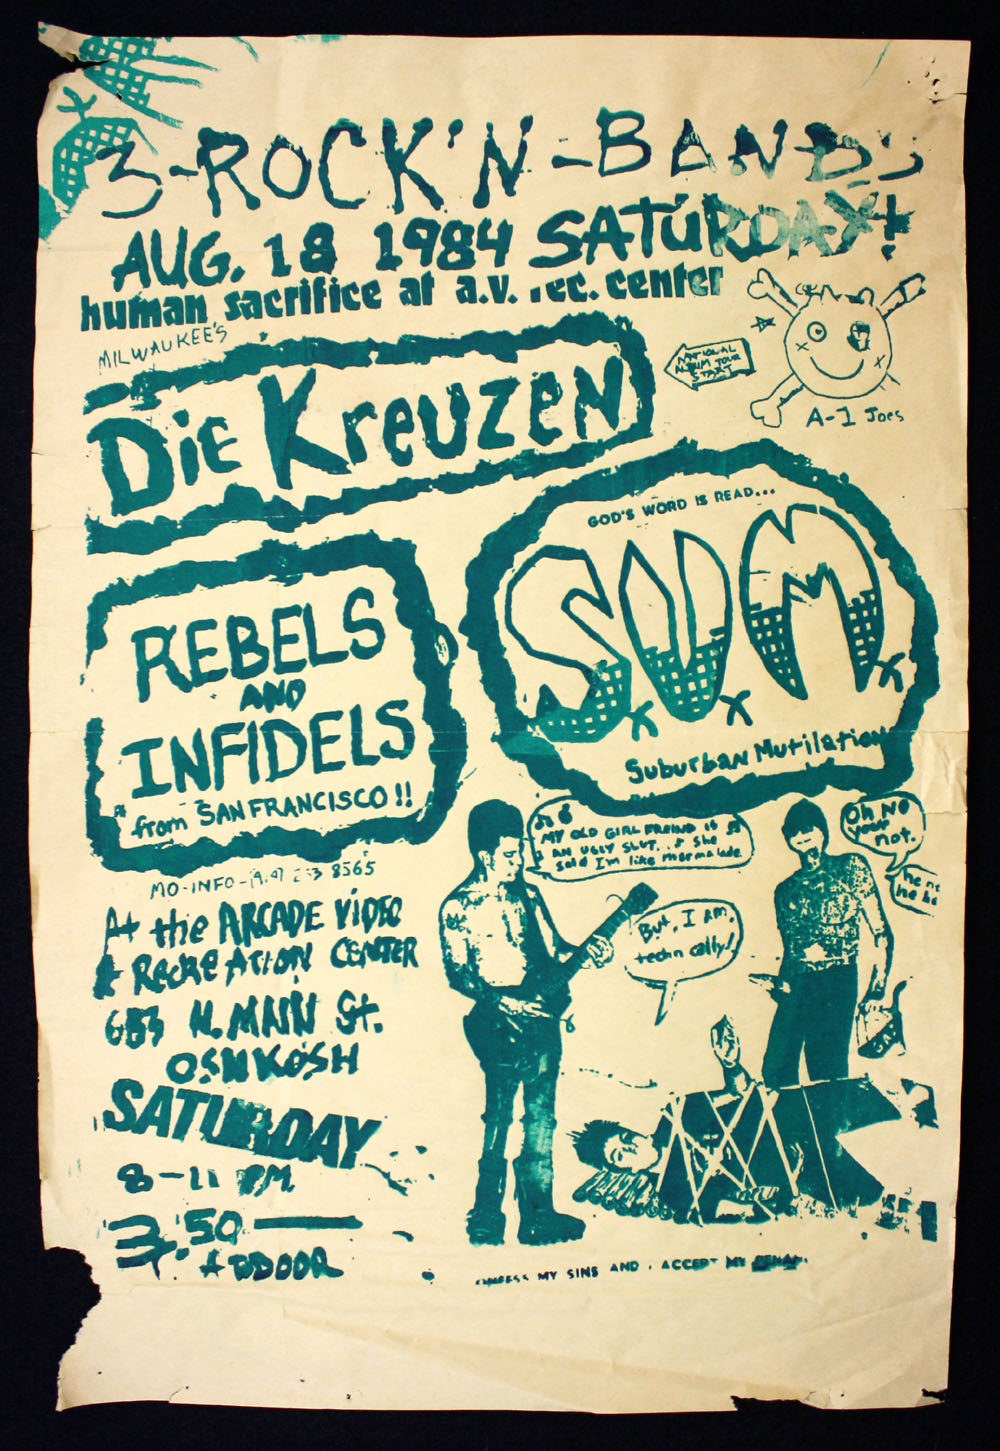 DIE KREUZEN w/ Rebels & Infidels, Suburban Mutilation at Arcade Video